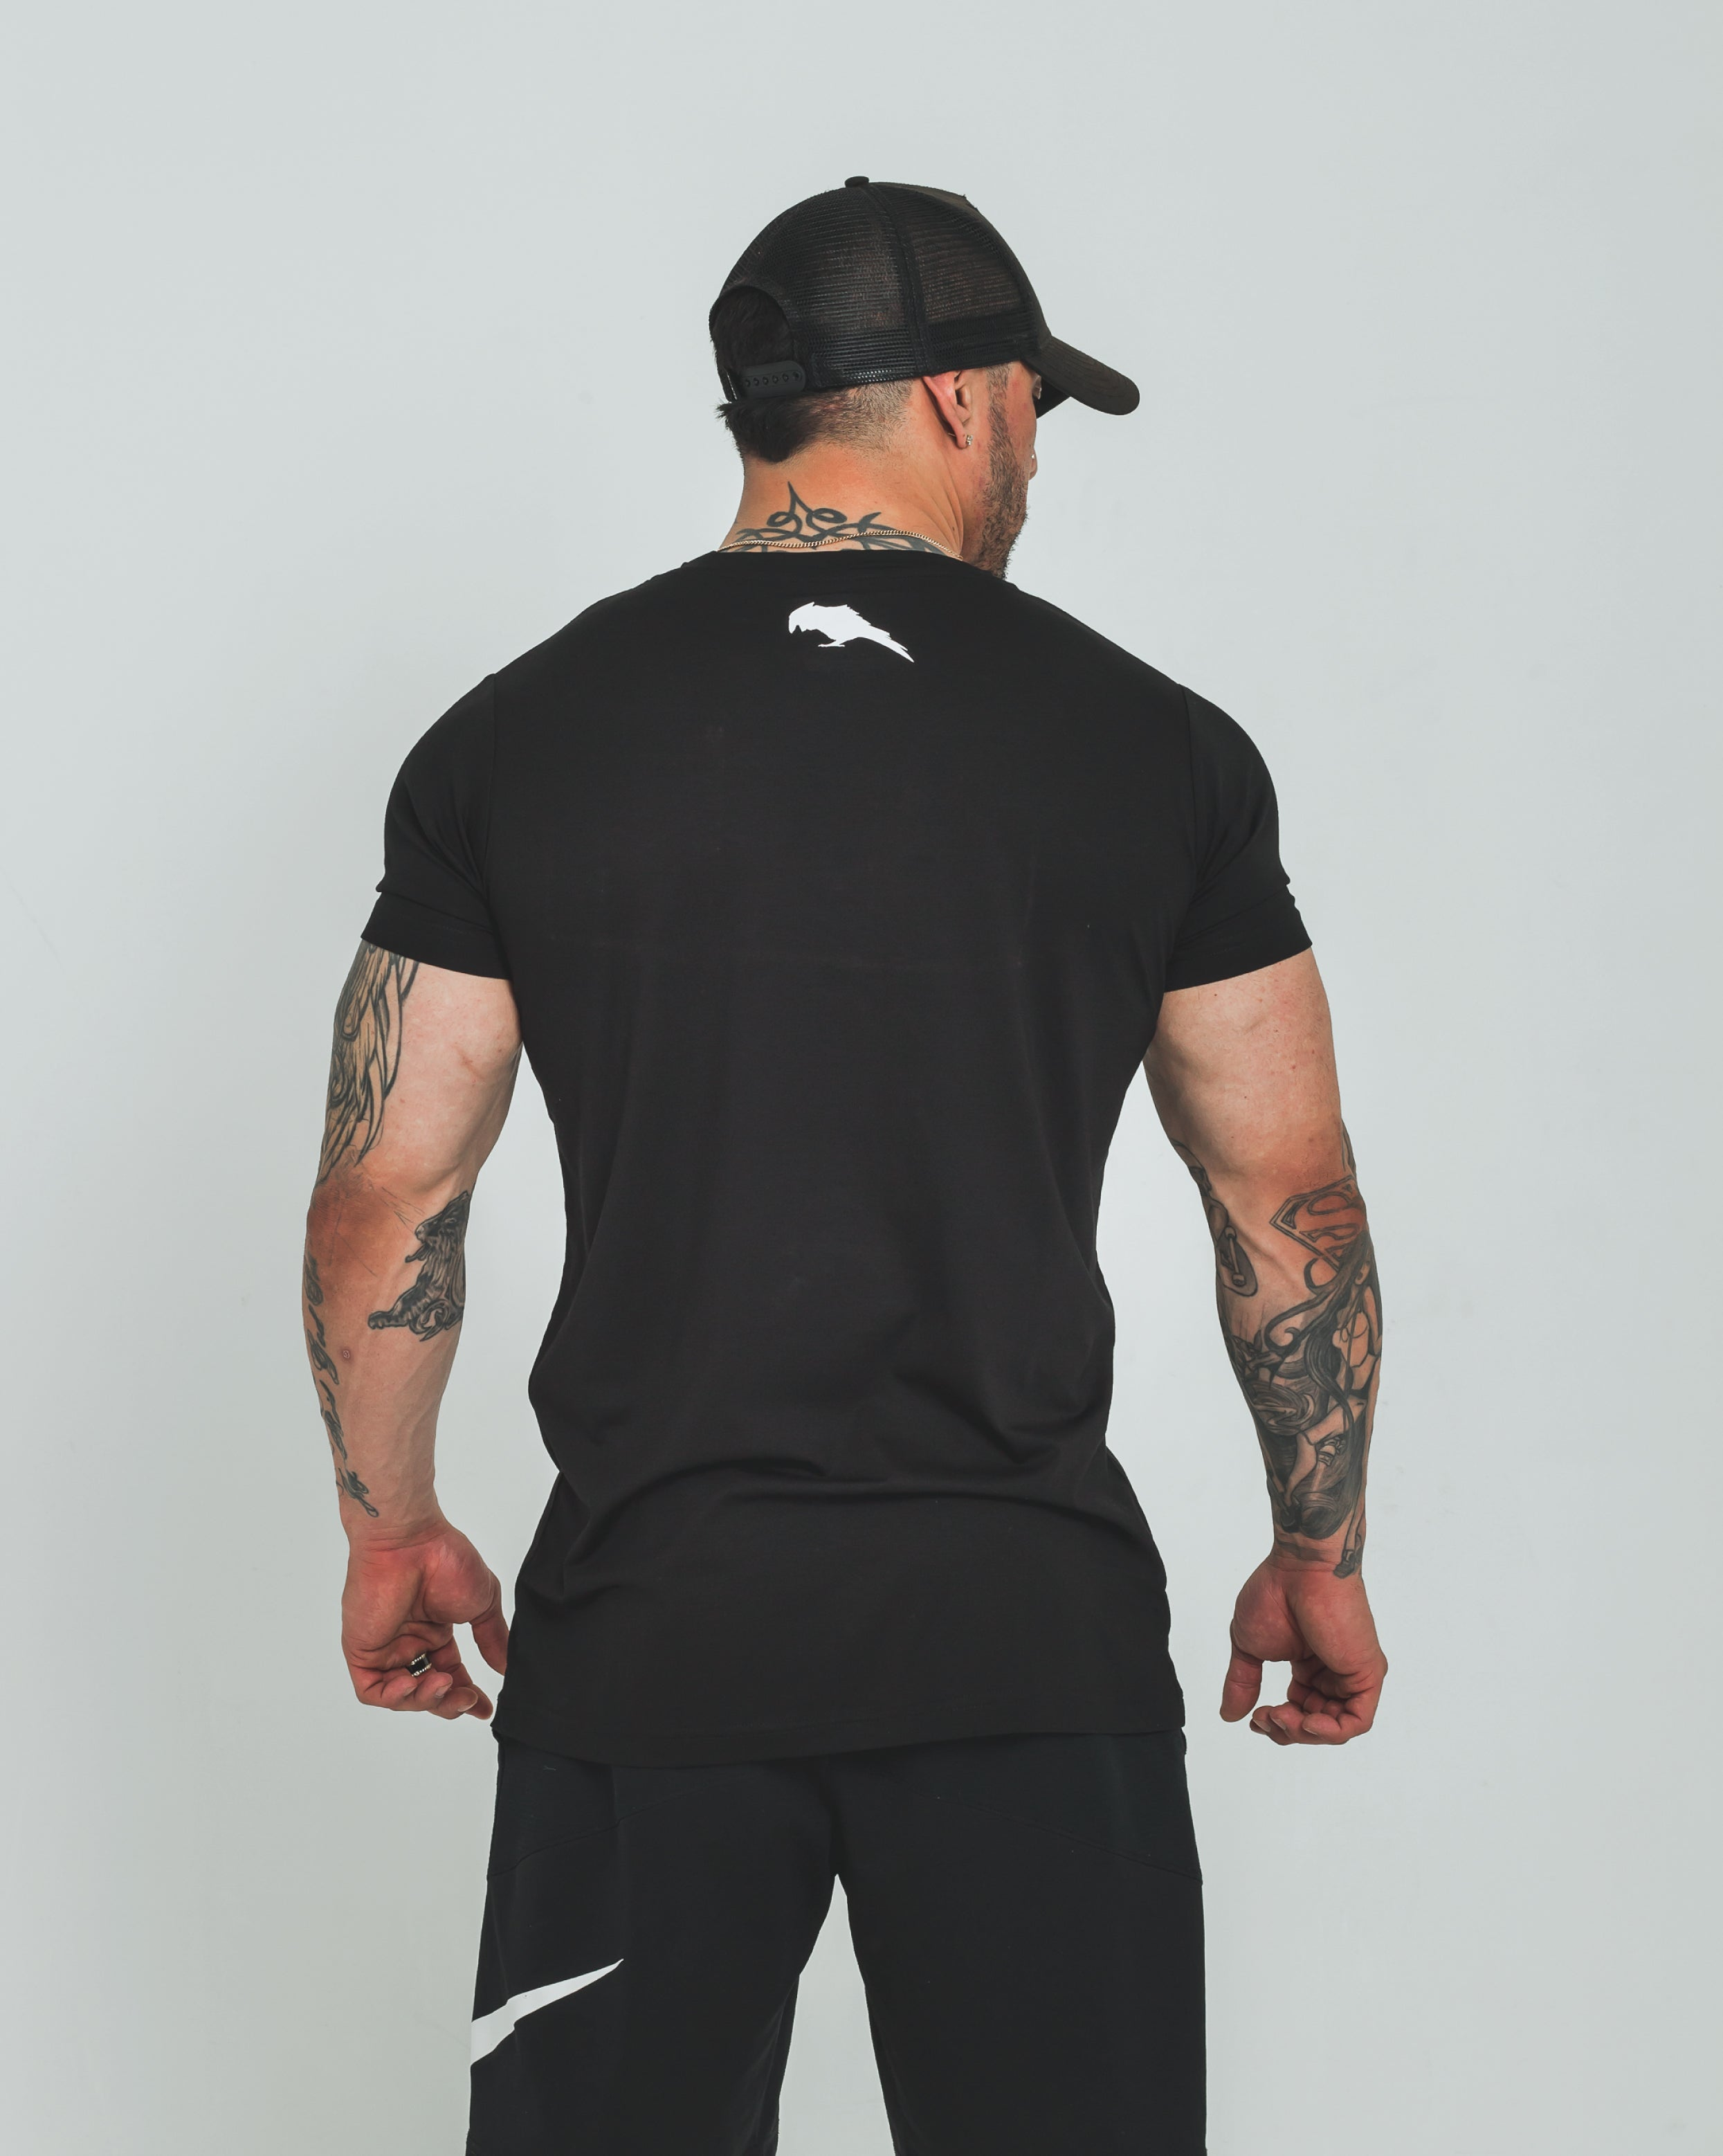 Dark Apparel Black Tee